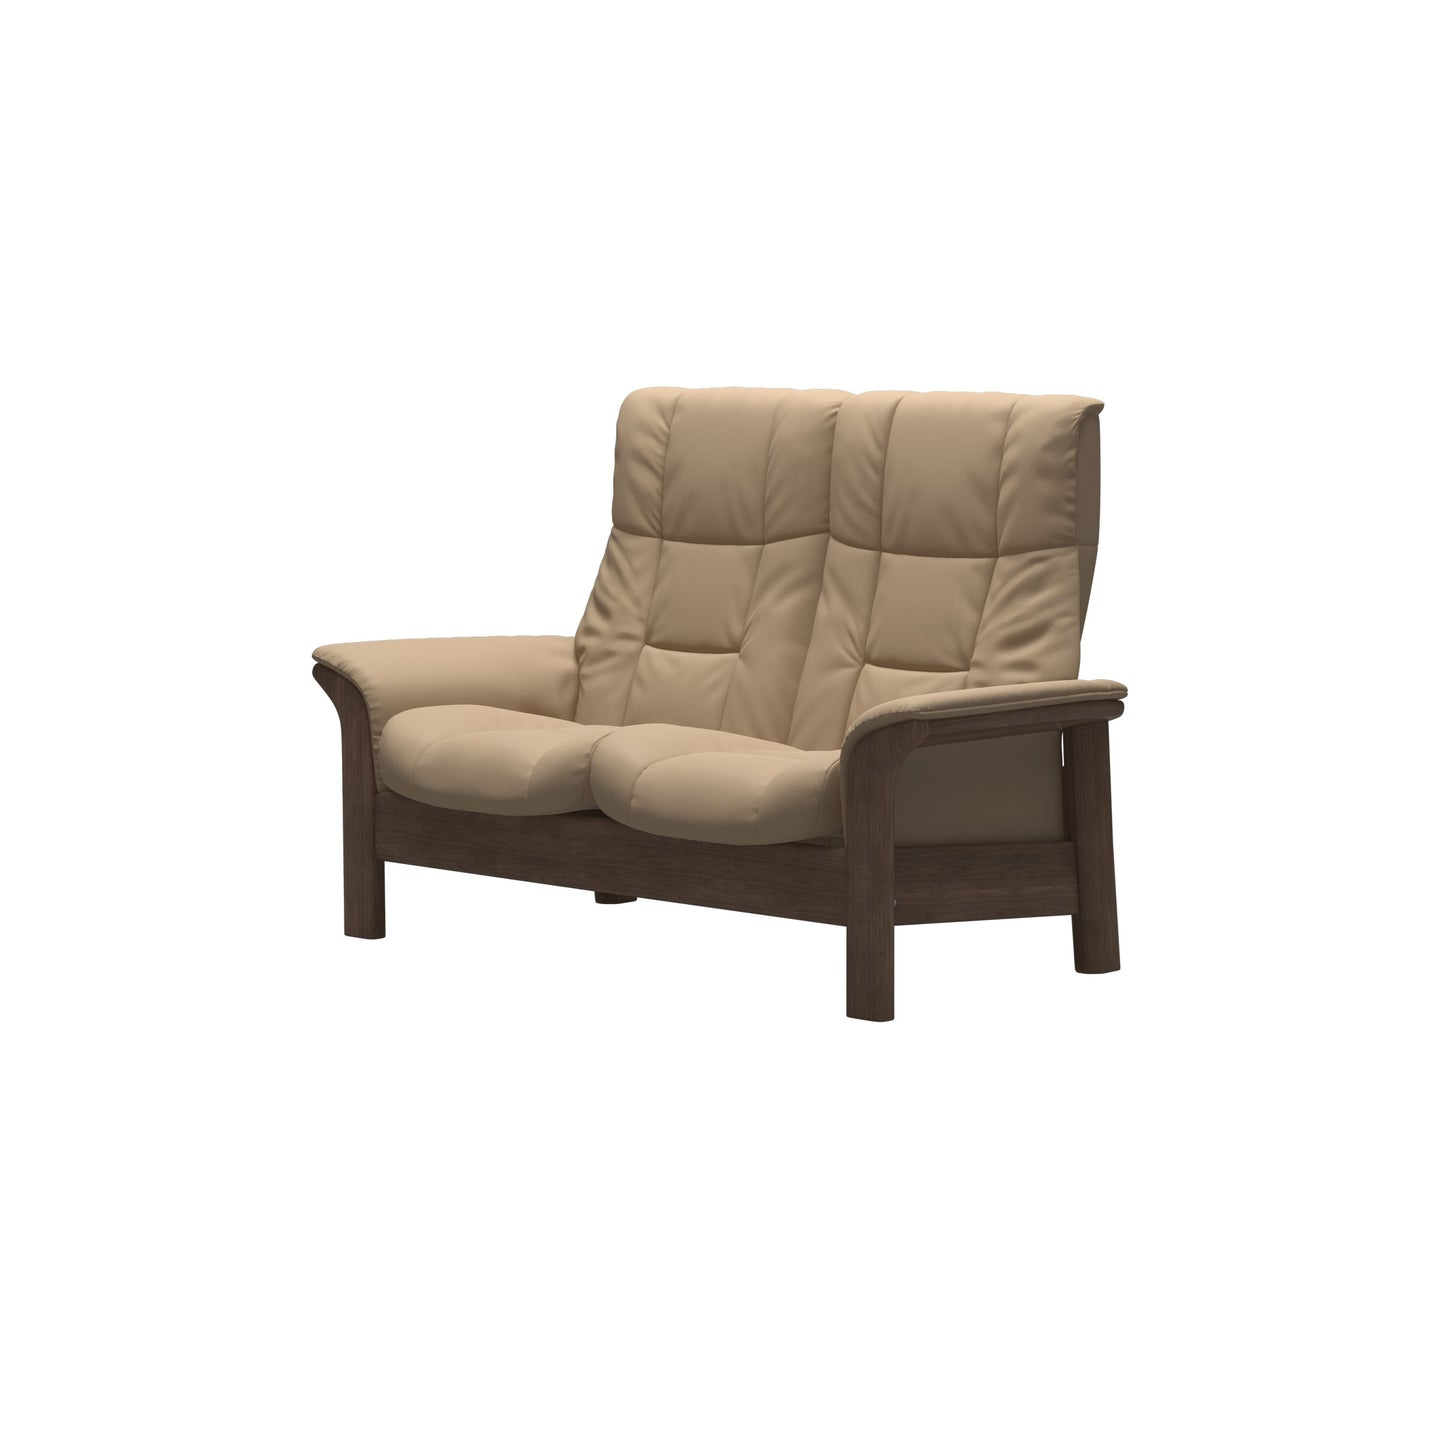 Stressless® Windsor (M) 2 seater High back